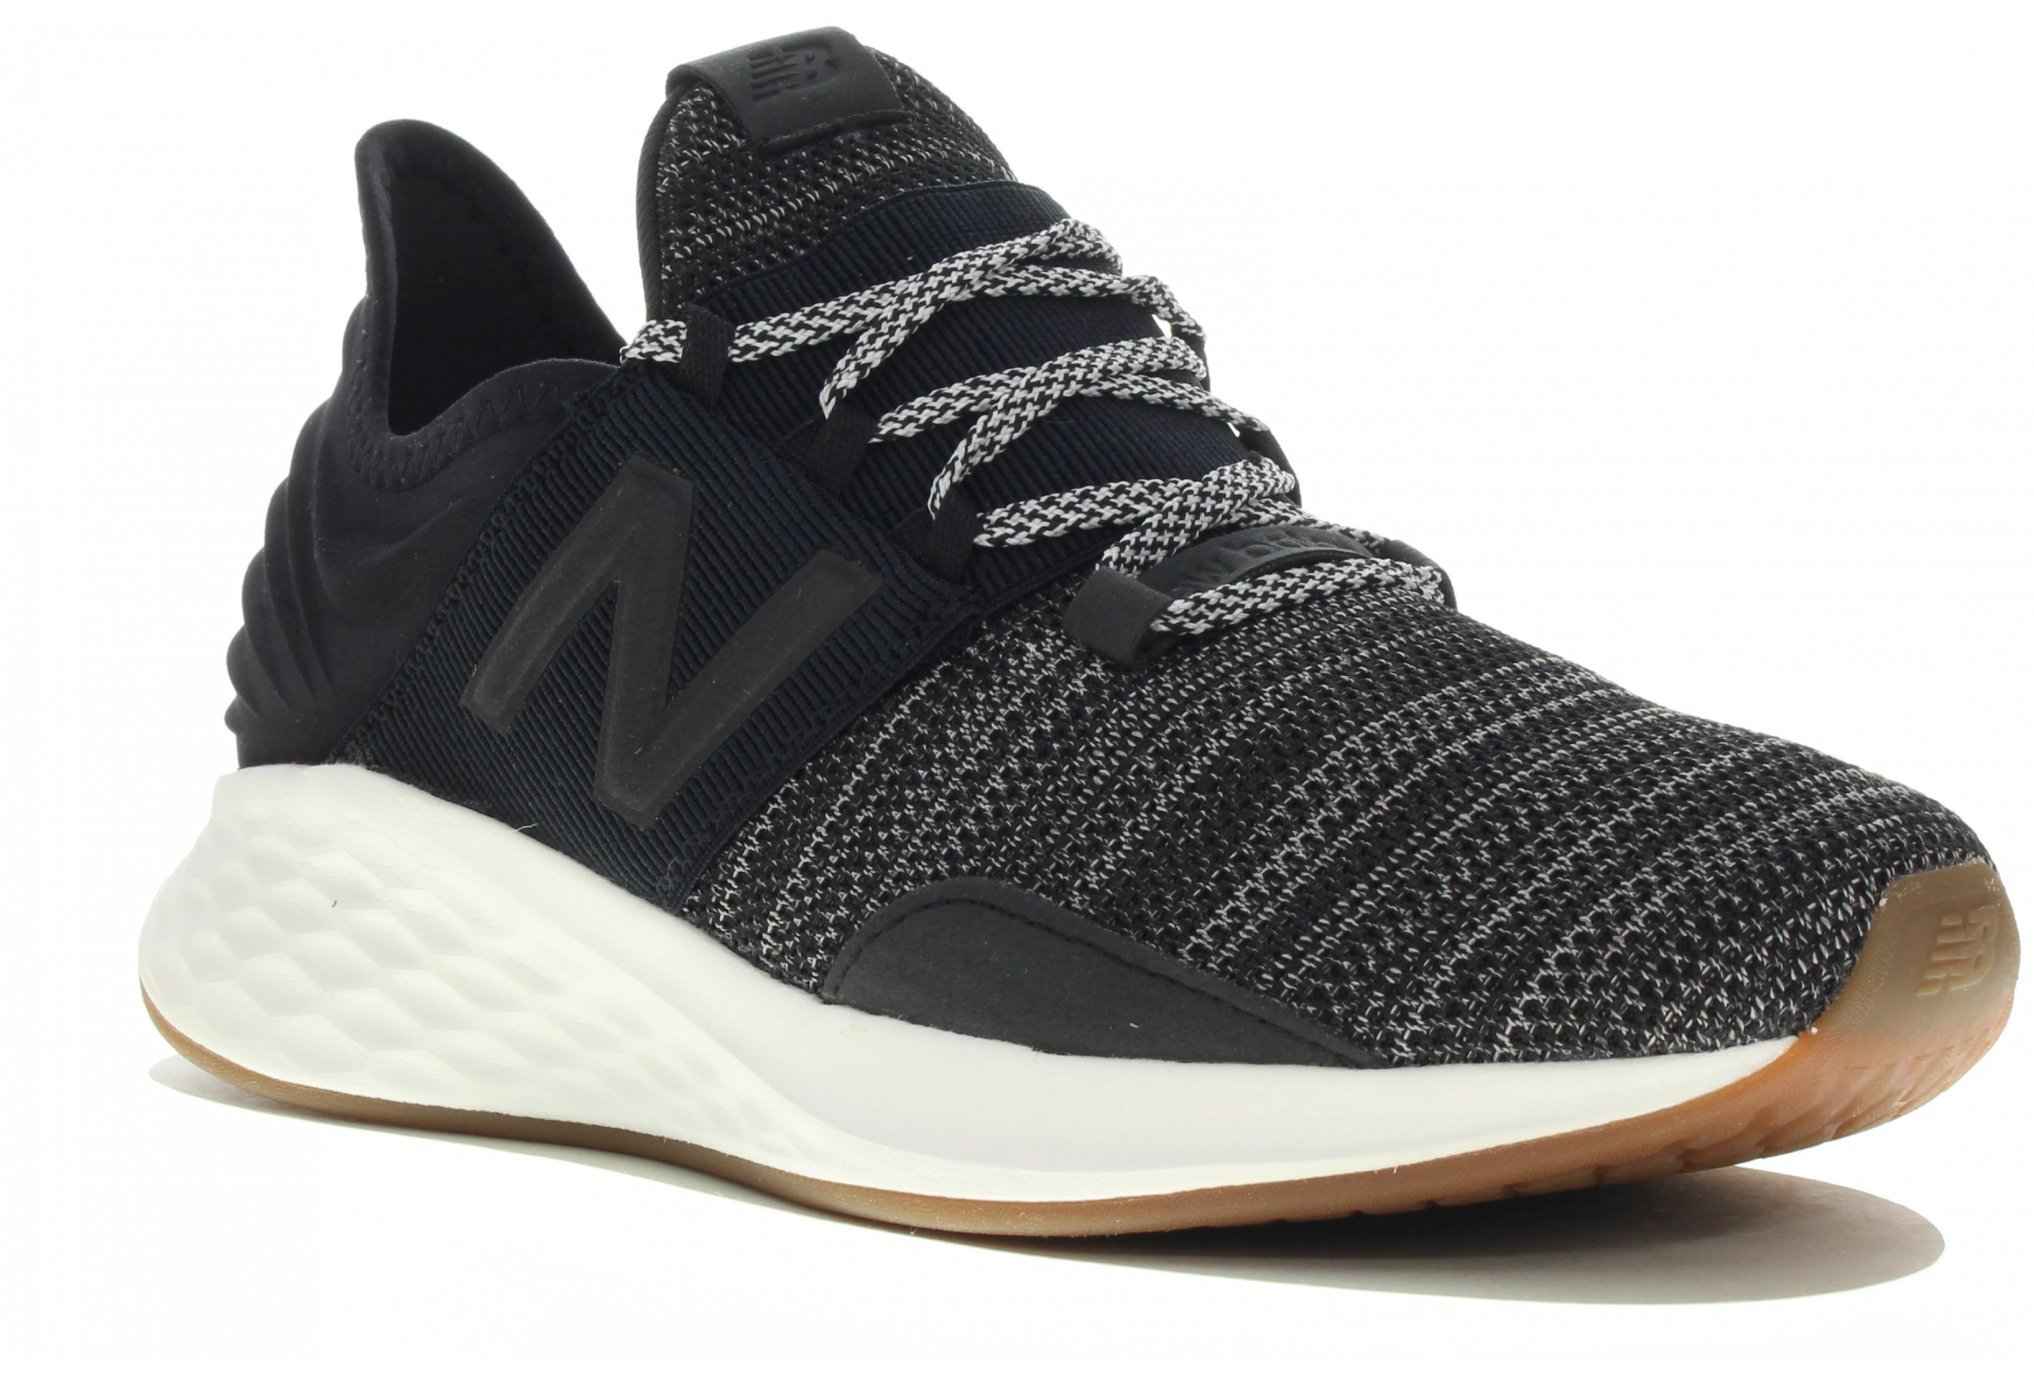 New Balance Fresh Foam Roav Boundaries Chaussures running femme